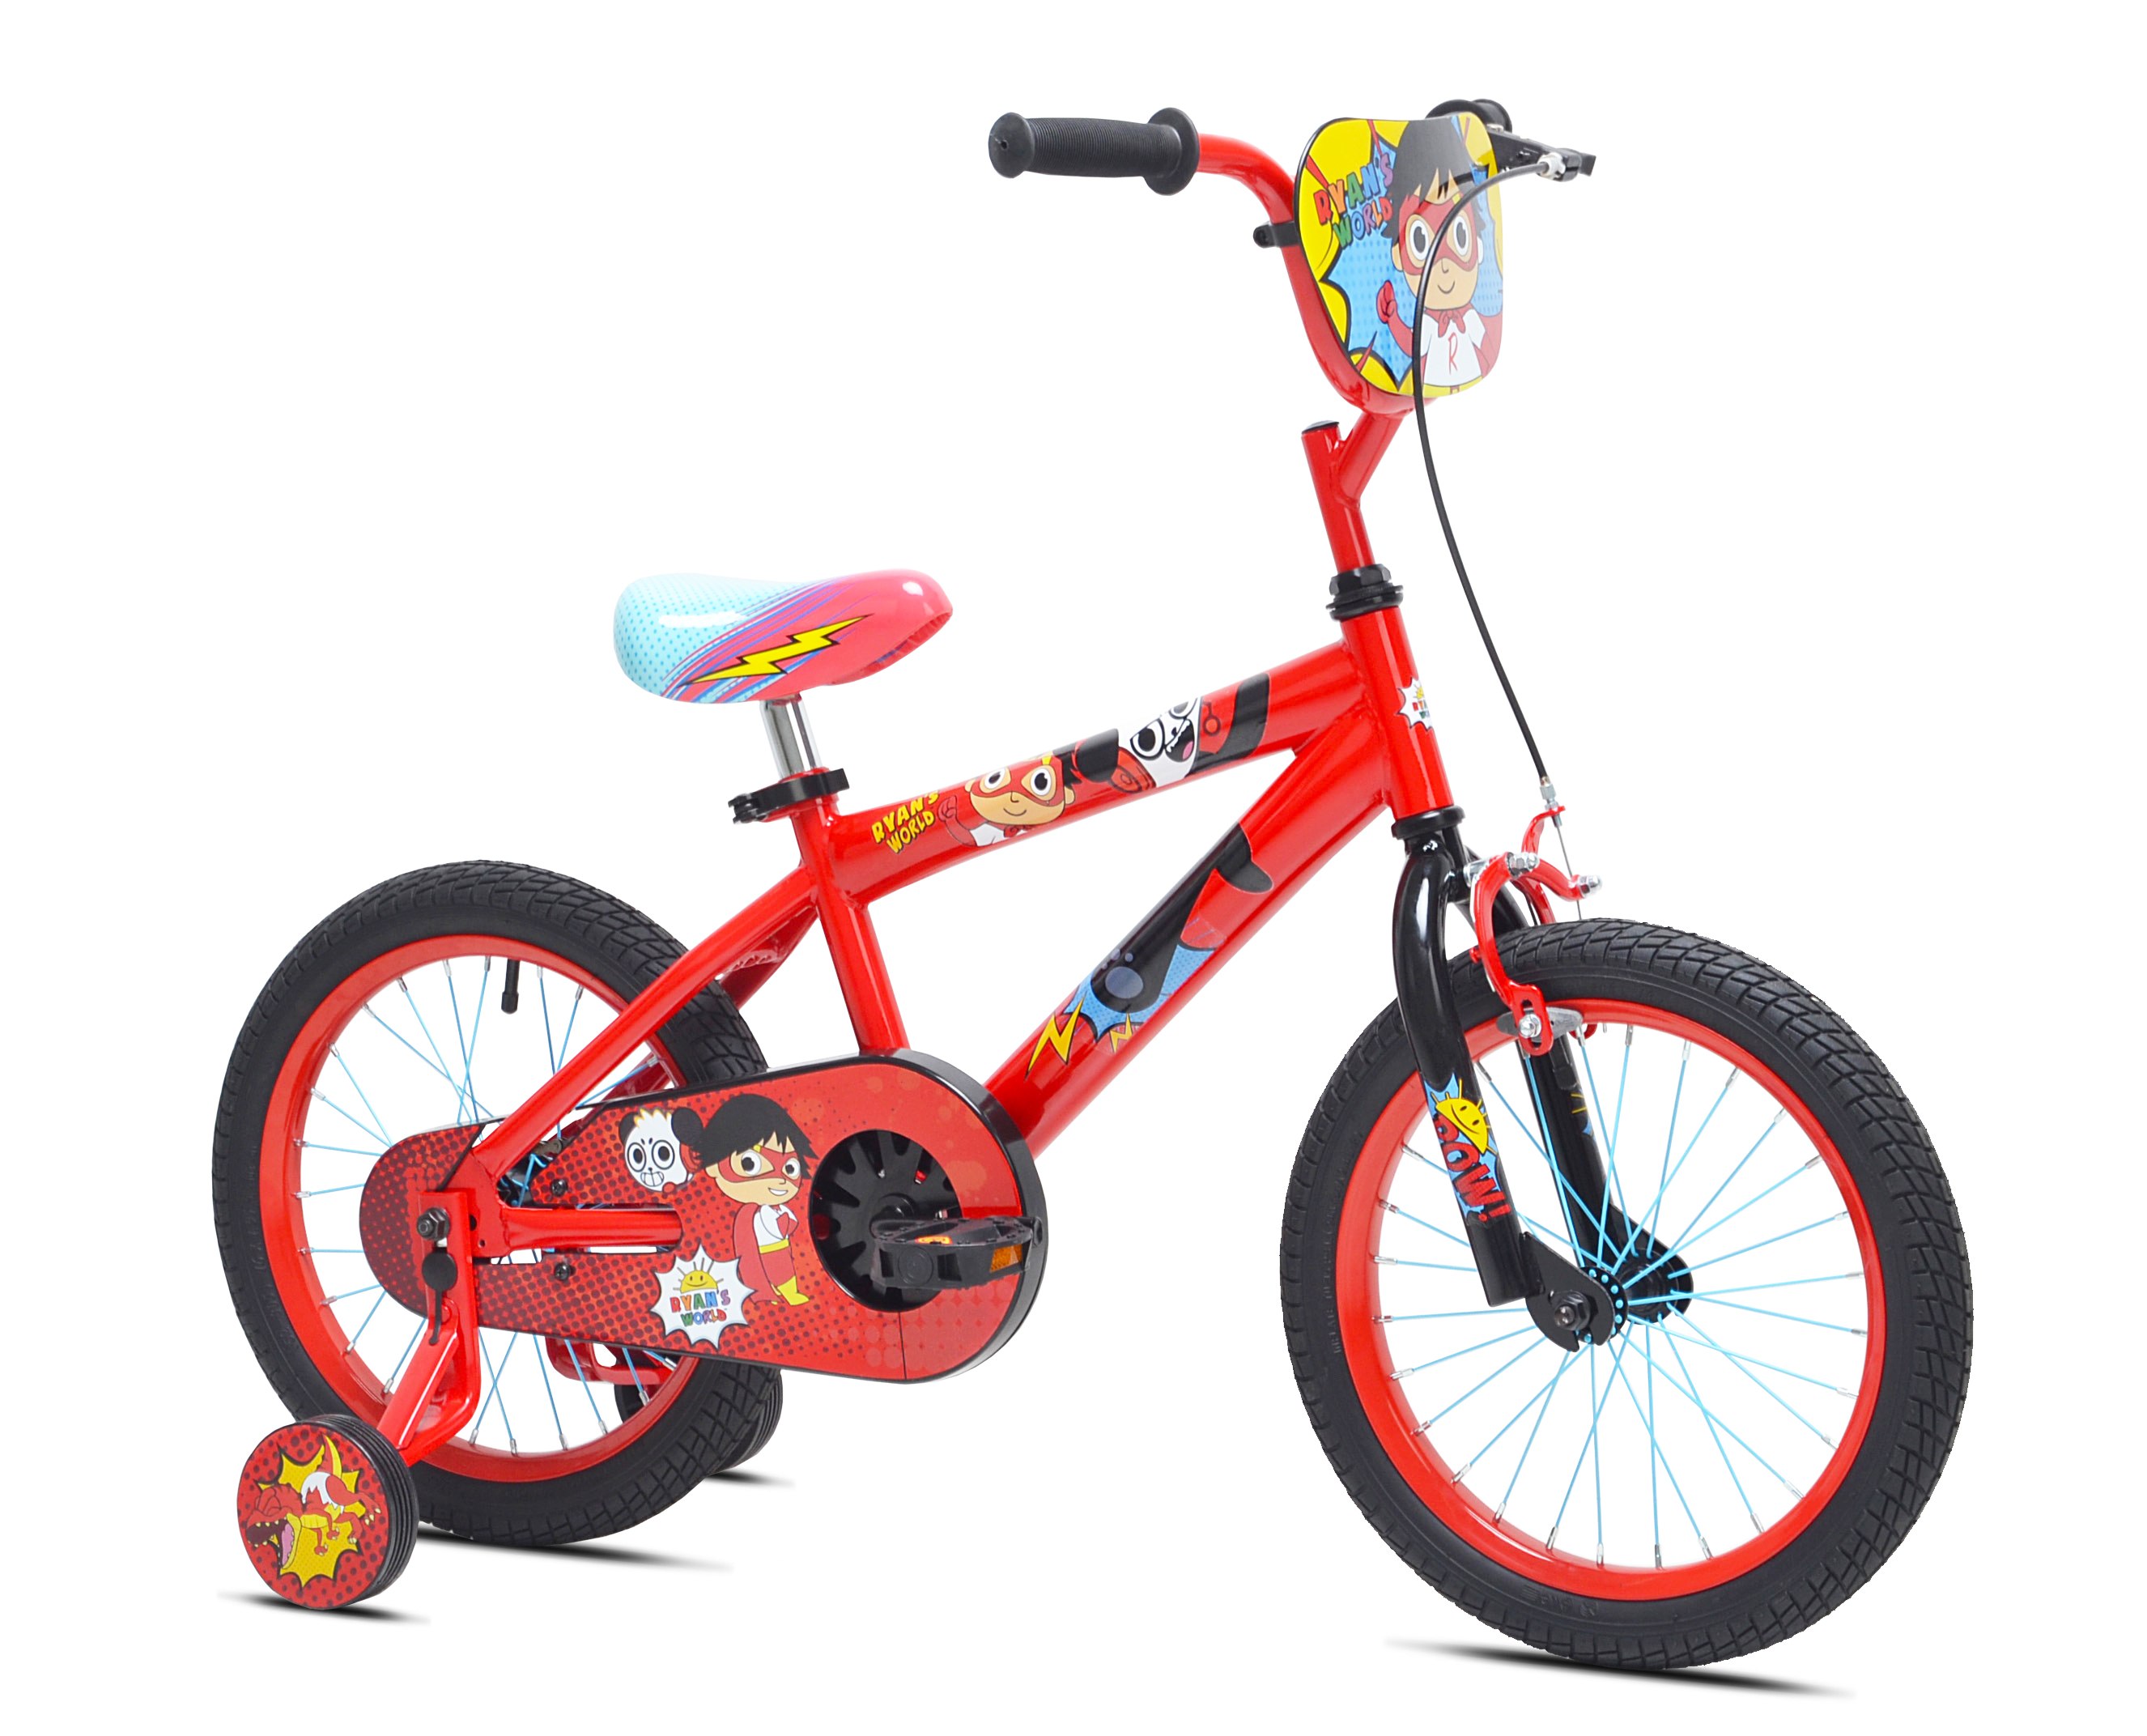 "Ryan's World 16"" Red Titan Boy's Bicycle, Red, For Height Sizes 3'2"" and Up by Kent International Inc"